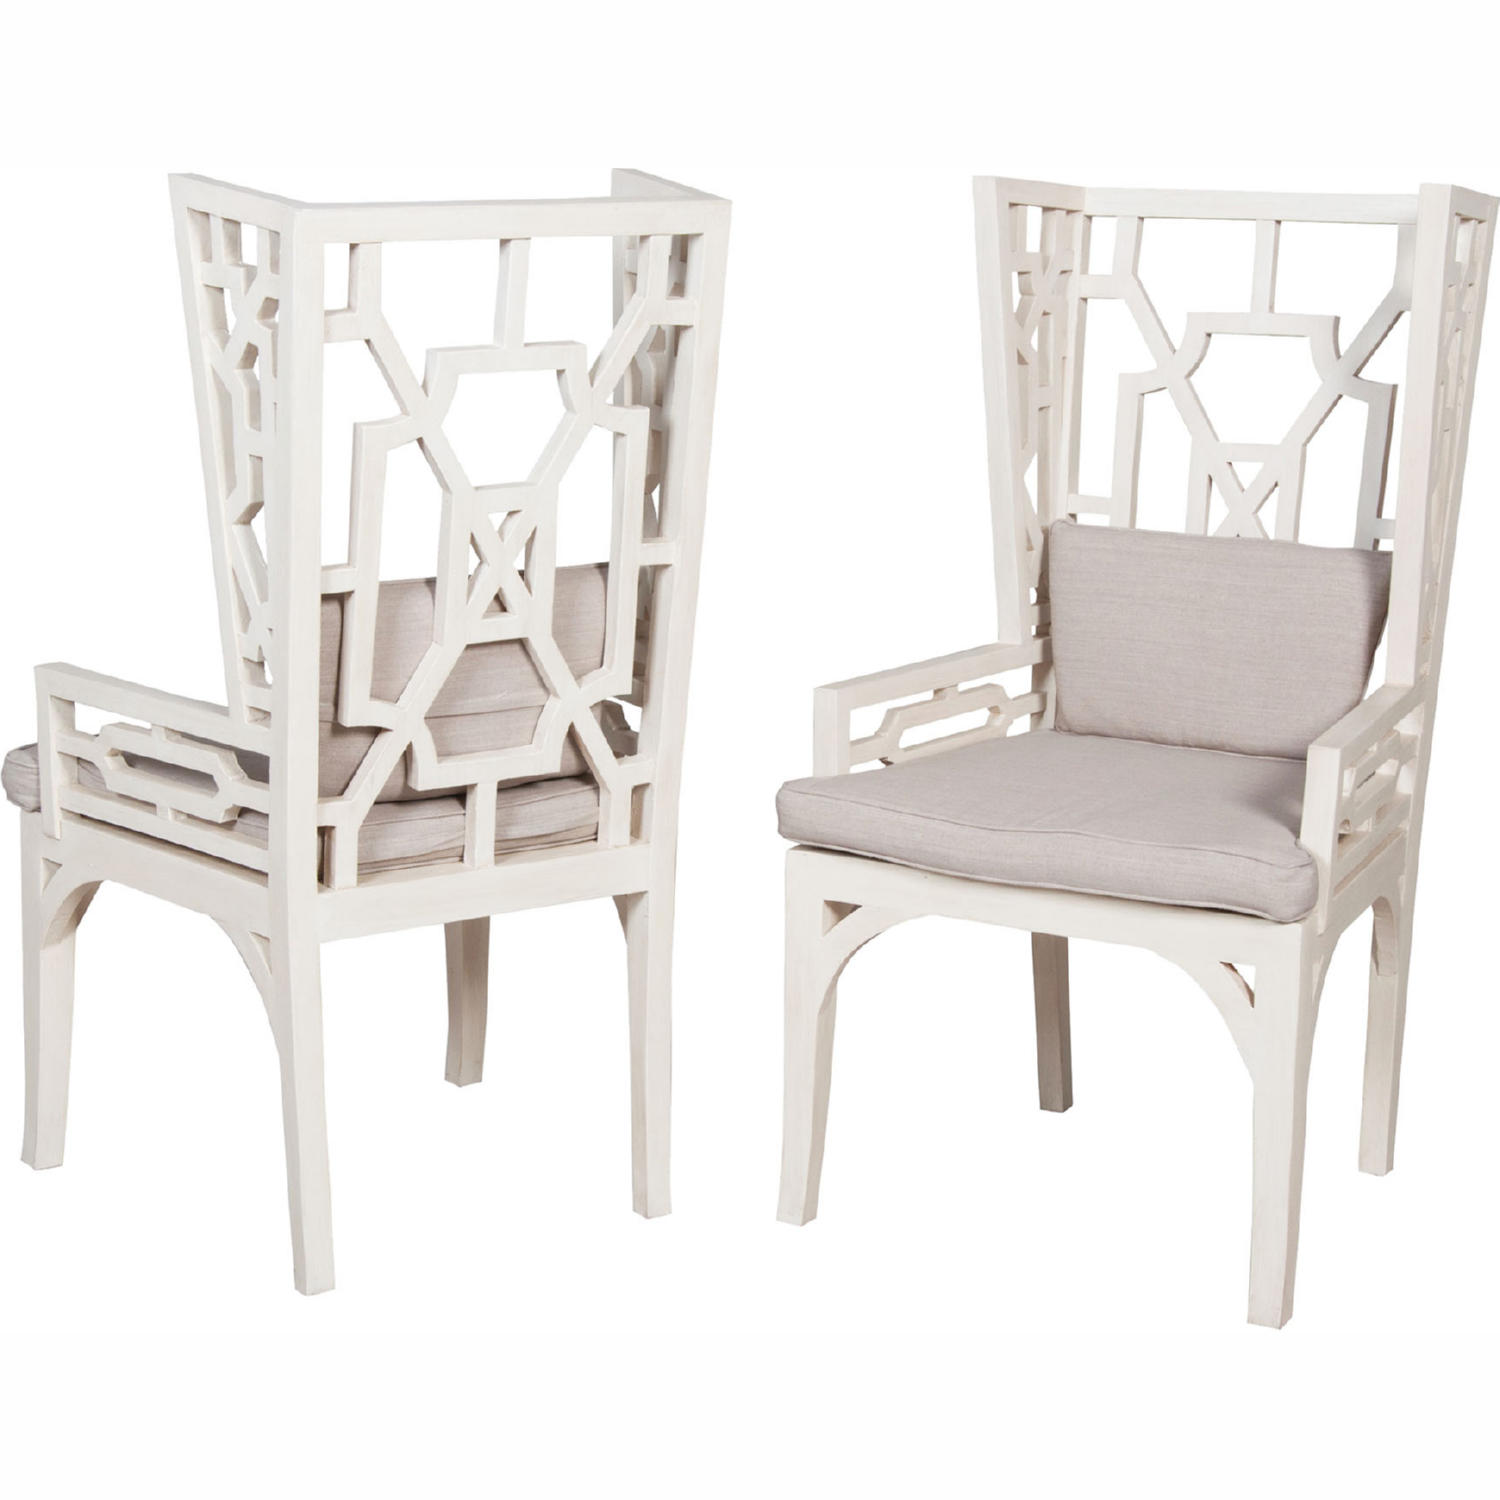 Outstanding Manor Wing Accent Chair In White Wood Grey Linen Set 2 By Elk Home Gamerscity Chair Design For Home Gamerscityorg